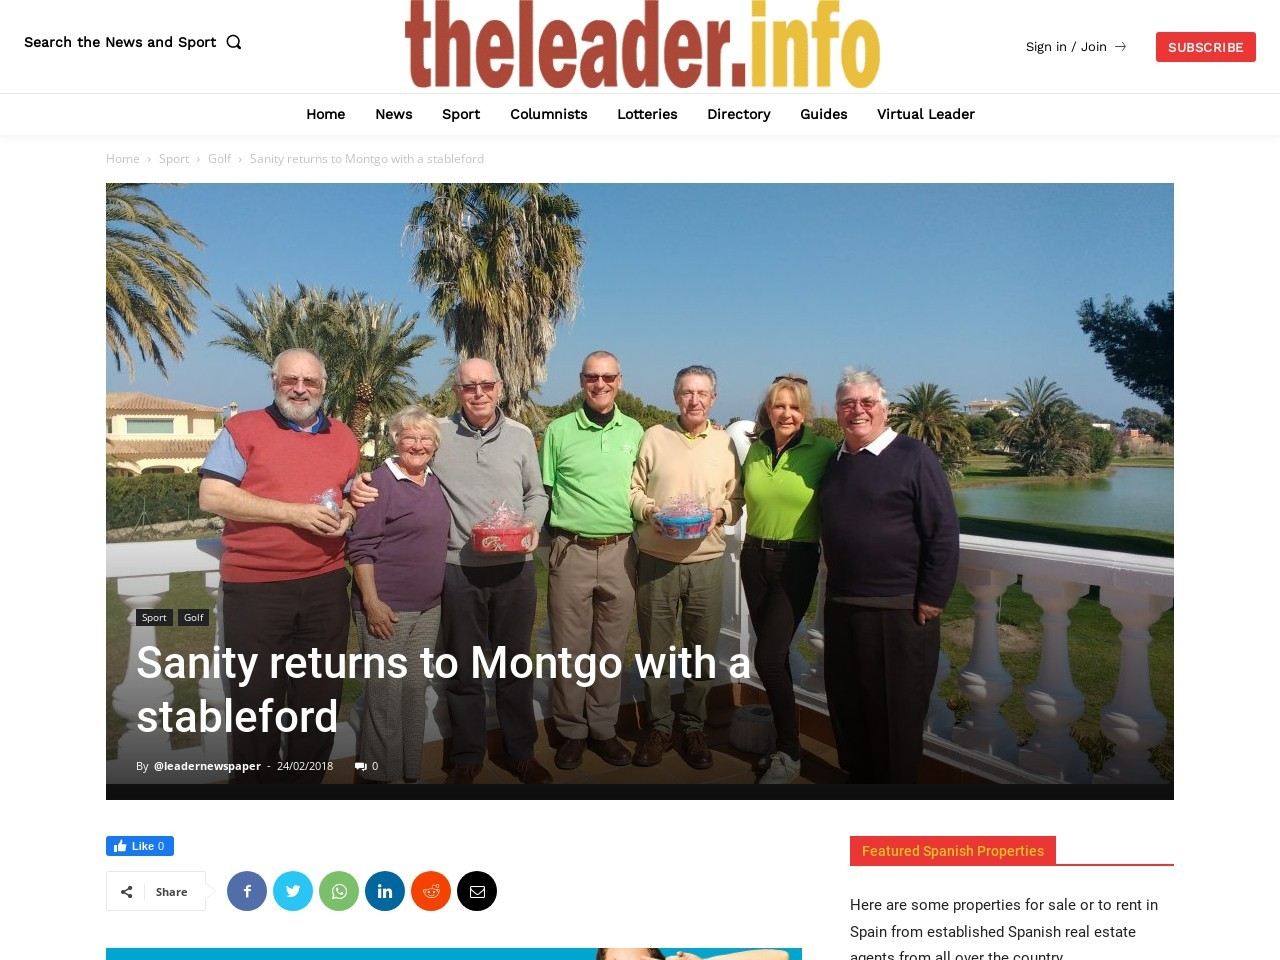 Sanity returns to Montgo with a stableford